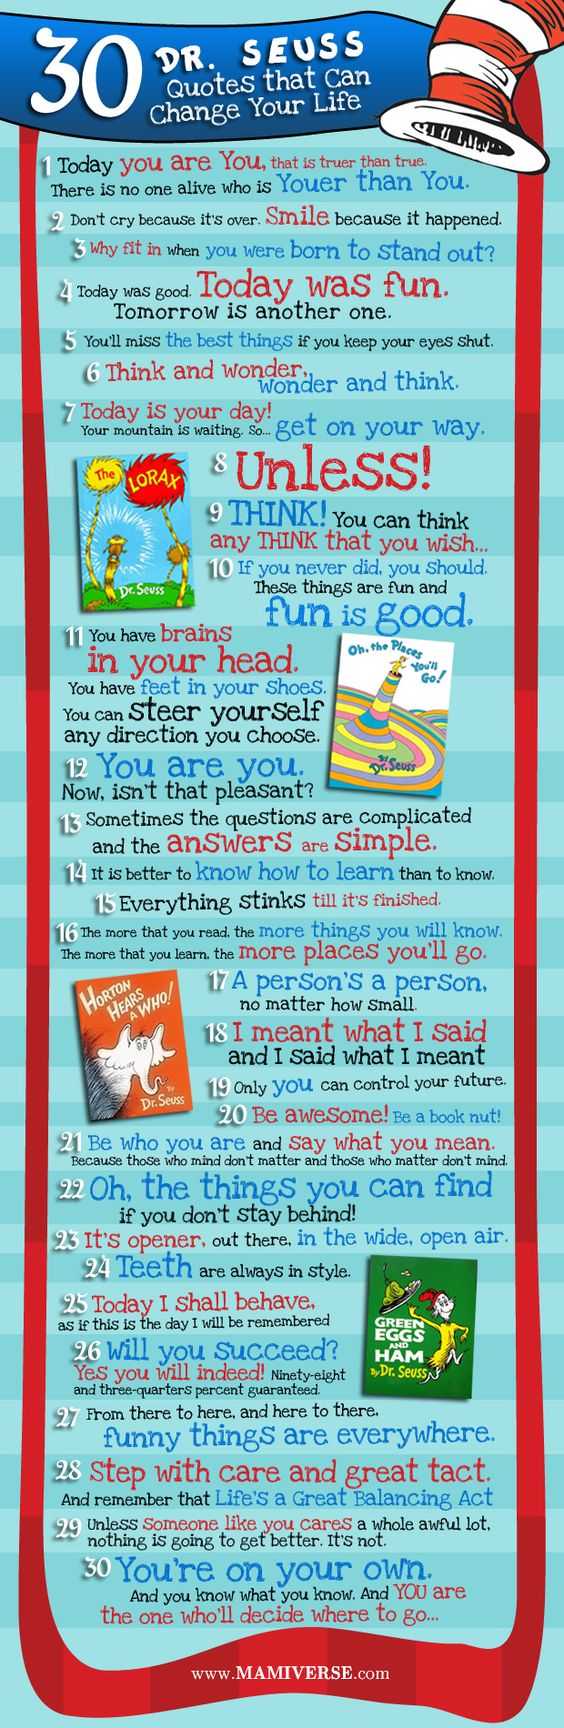 Dr Seuss quotes that can change your life. ♥